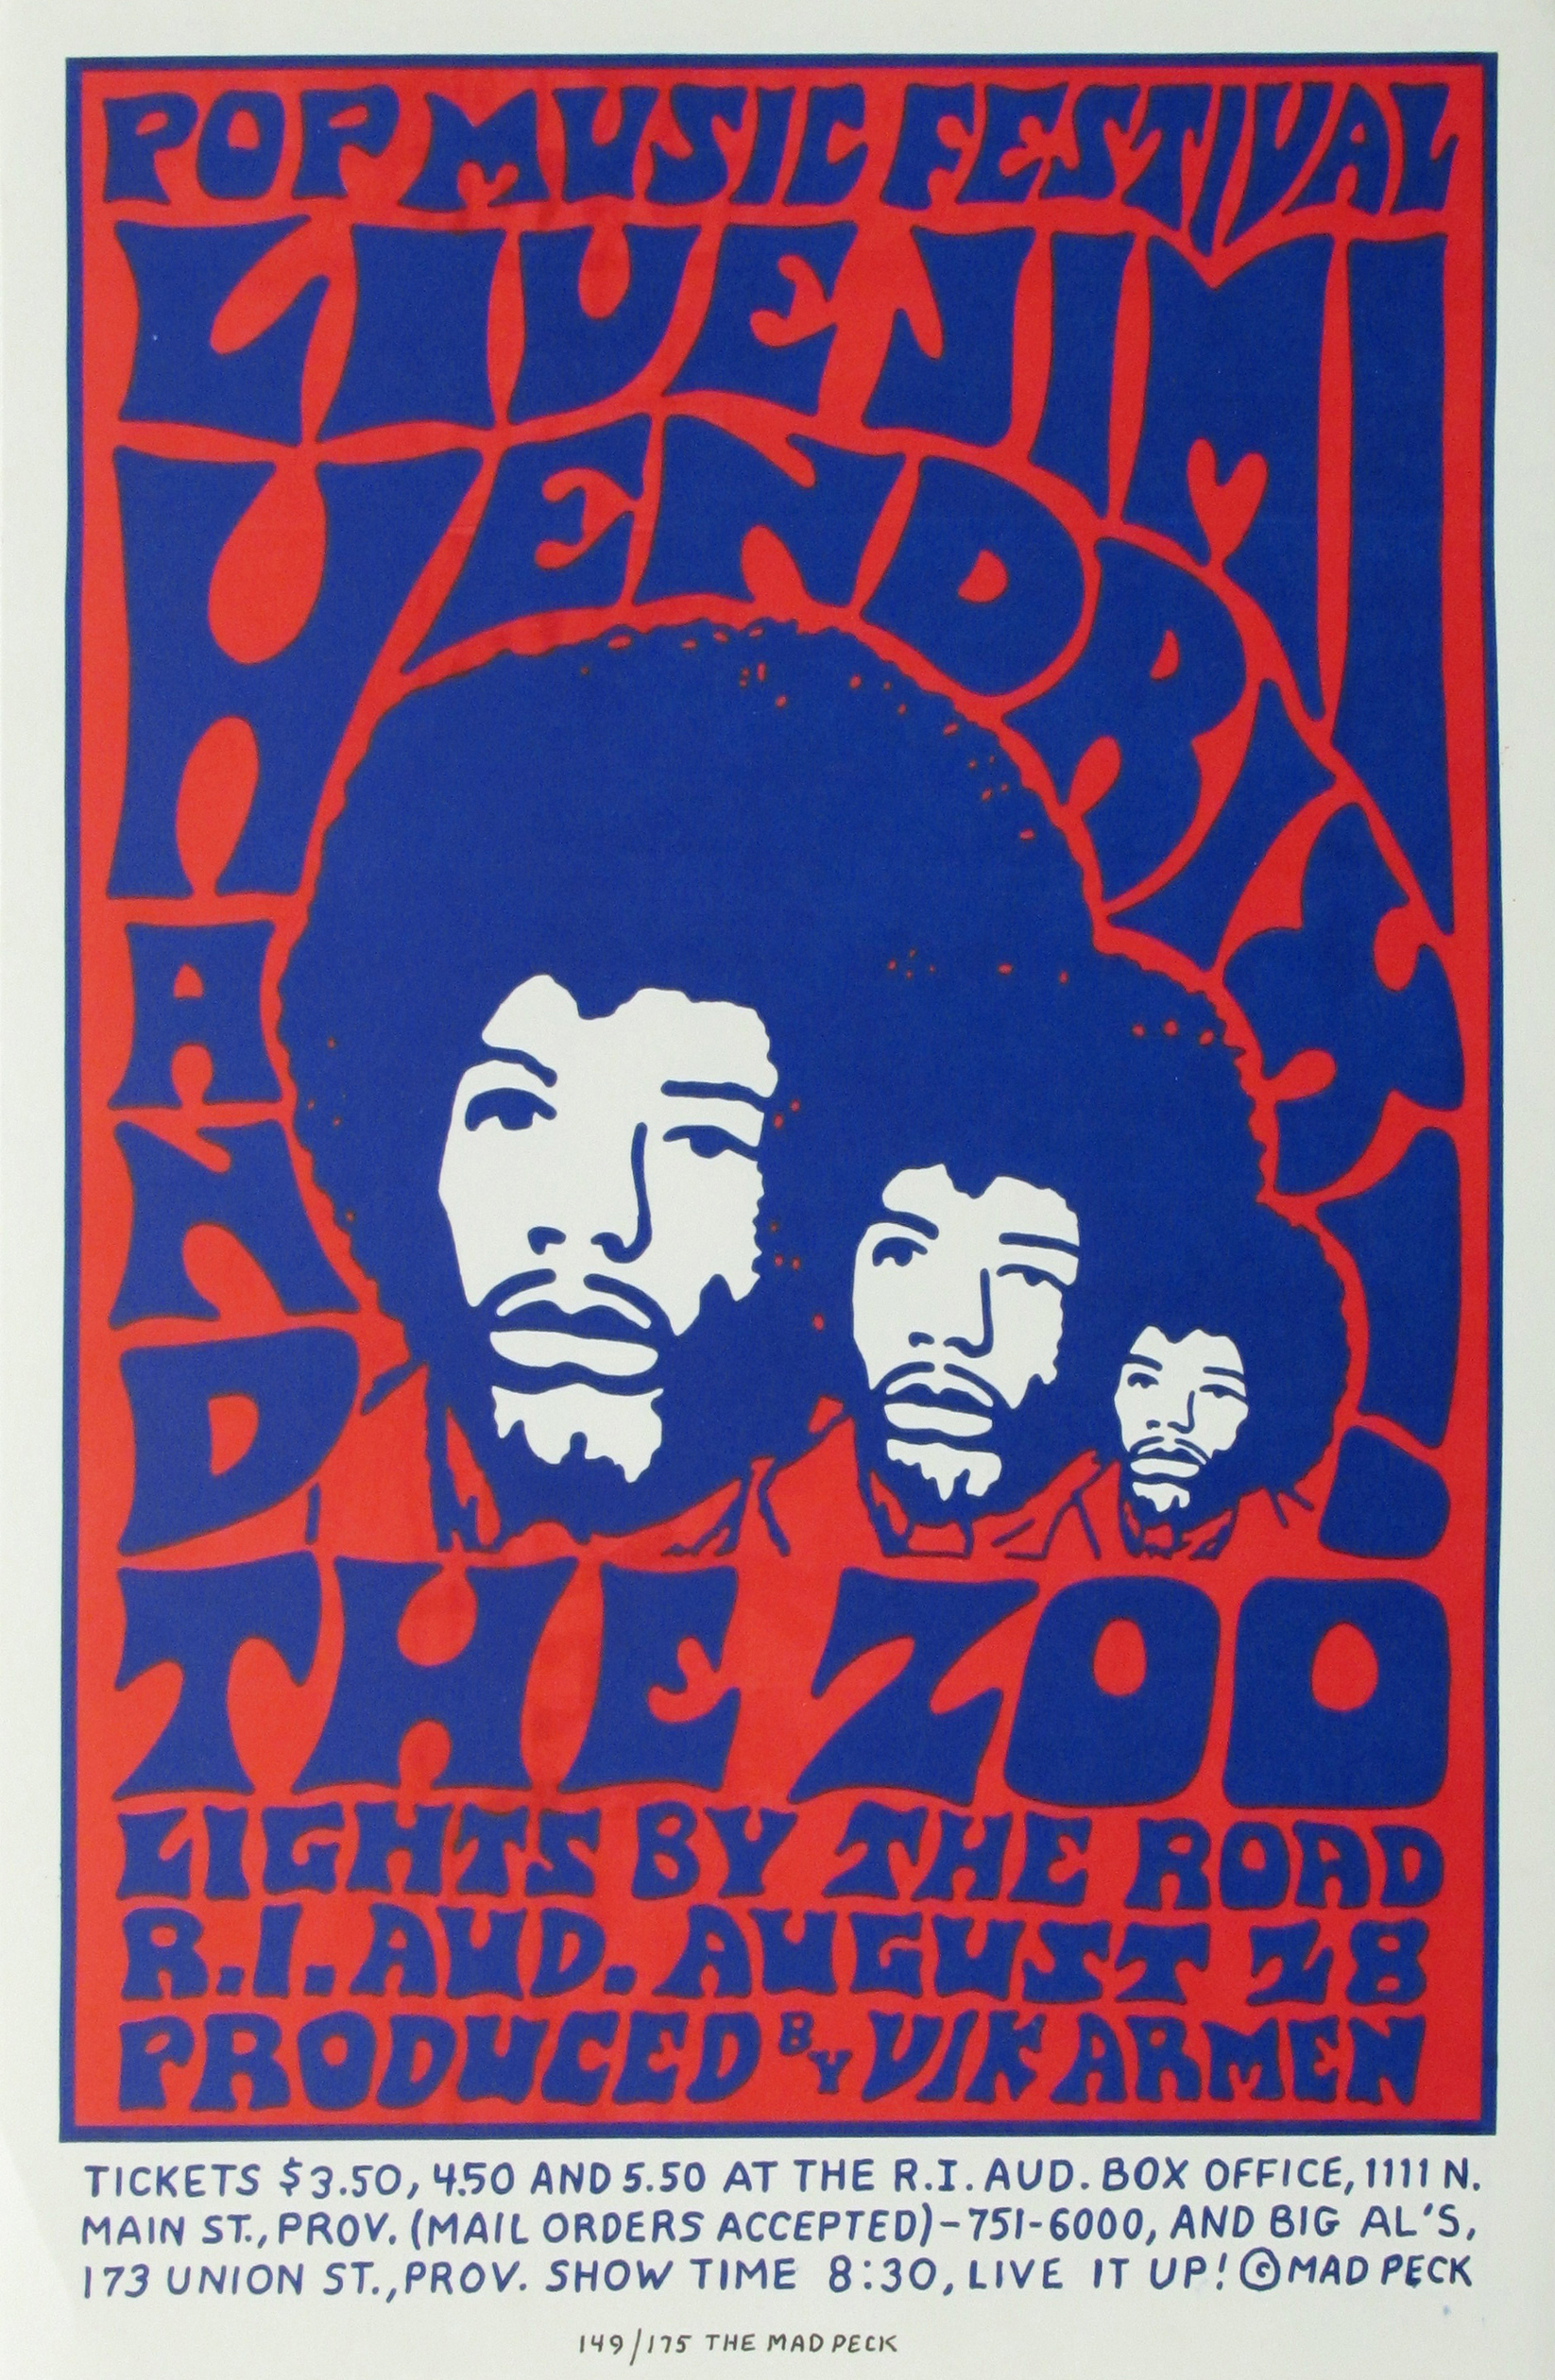 jimi hendrix and the zoo original limited edition concert